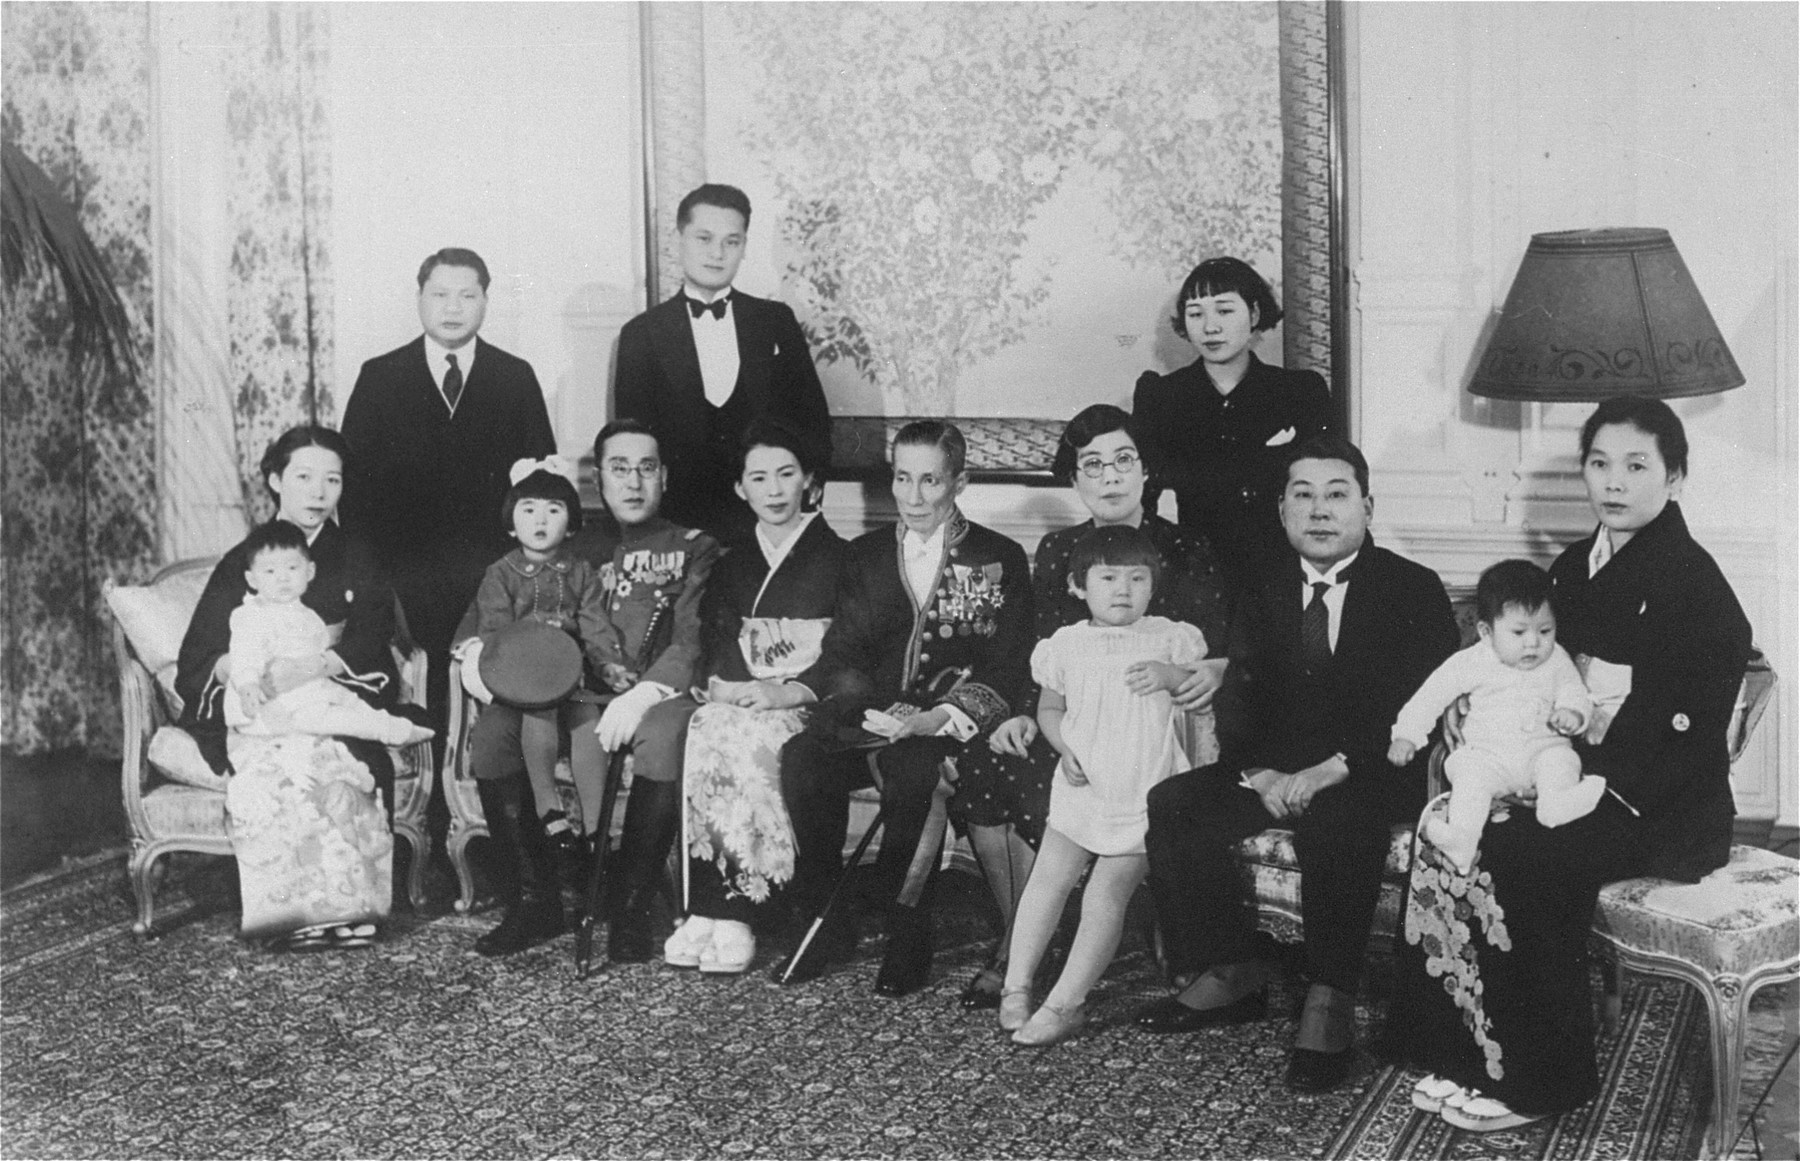 Chiune Sugihara poses with his family and friends at his residence in Kaunas.